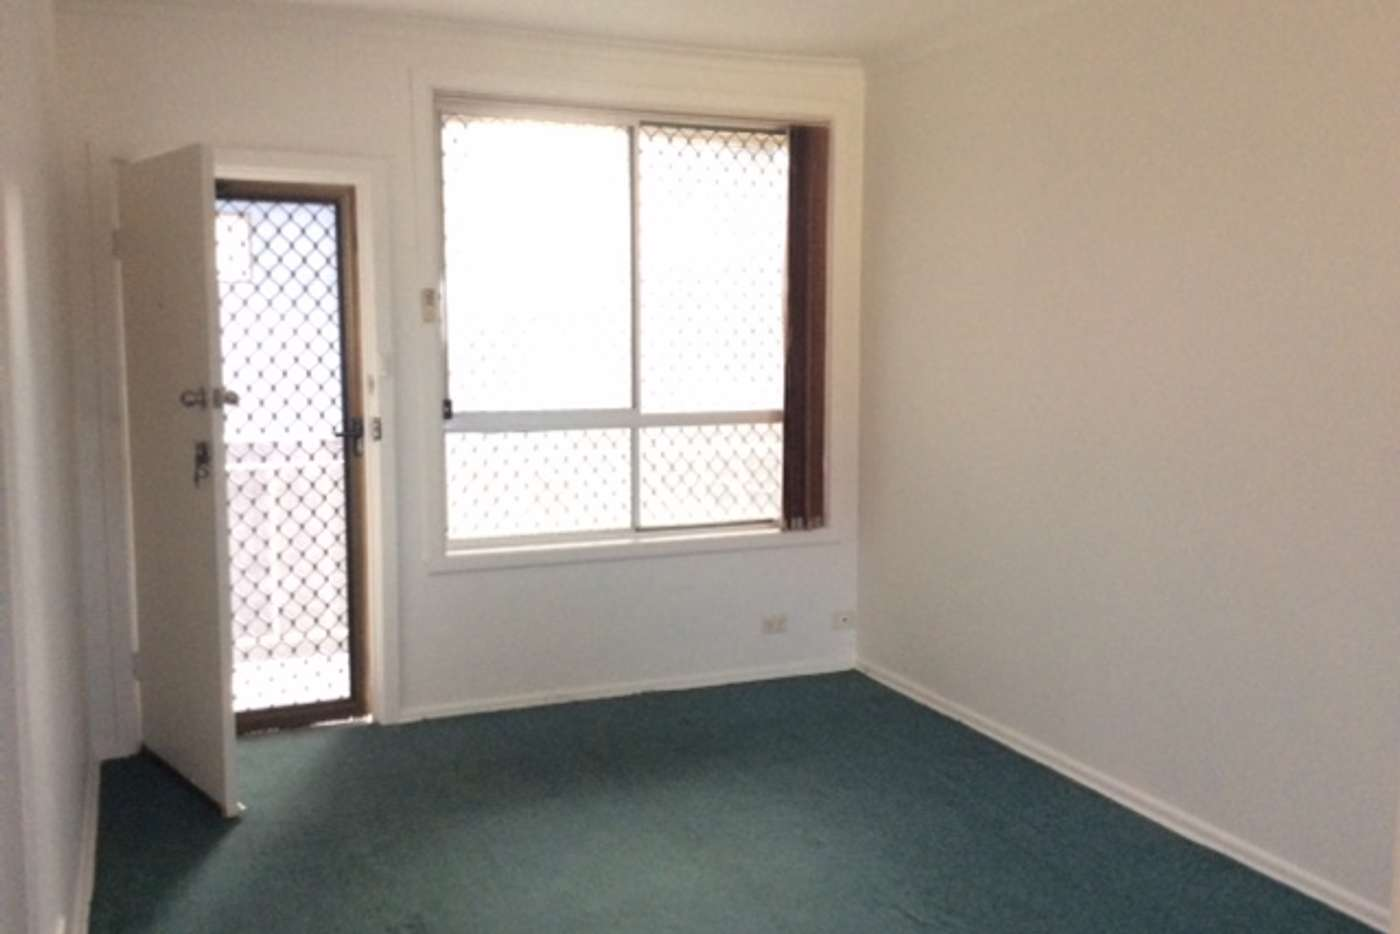 Main view of Homely flat listing, 23/697 Barkly Street, Footscray VIC 3011